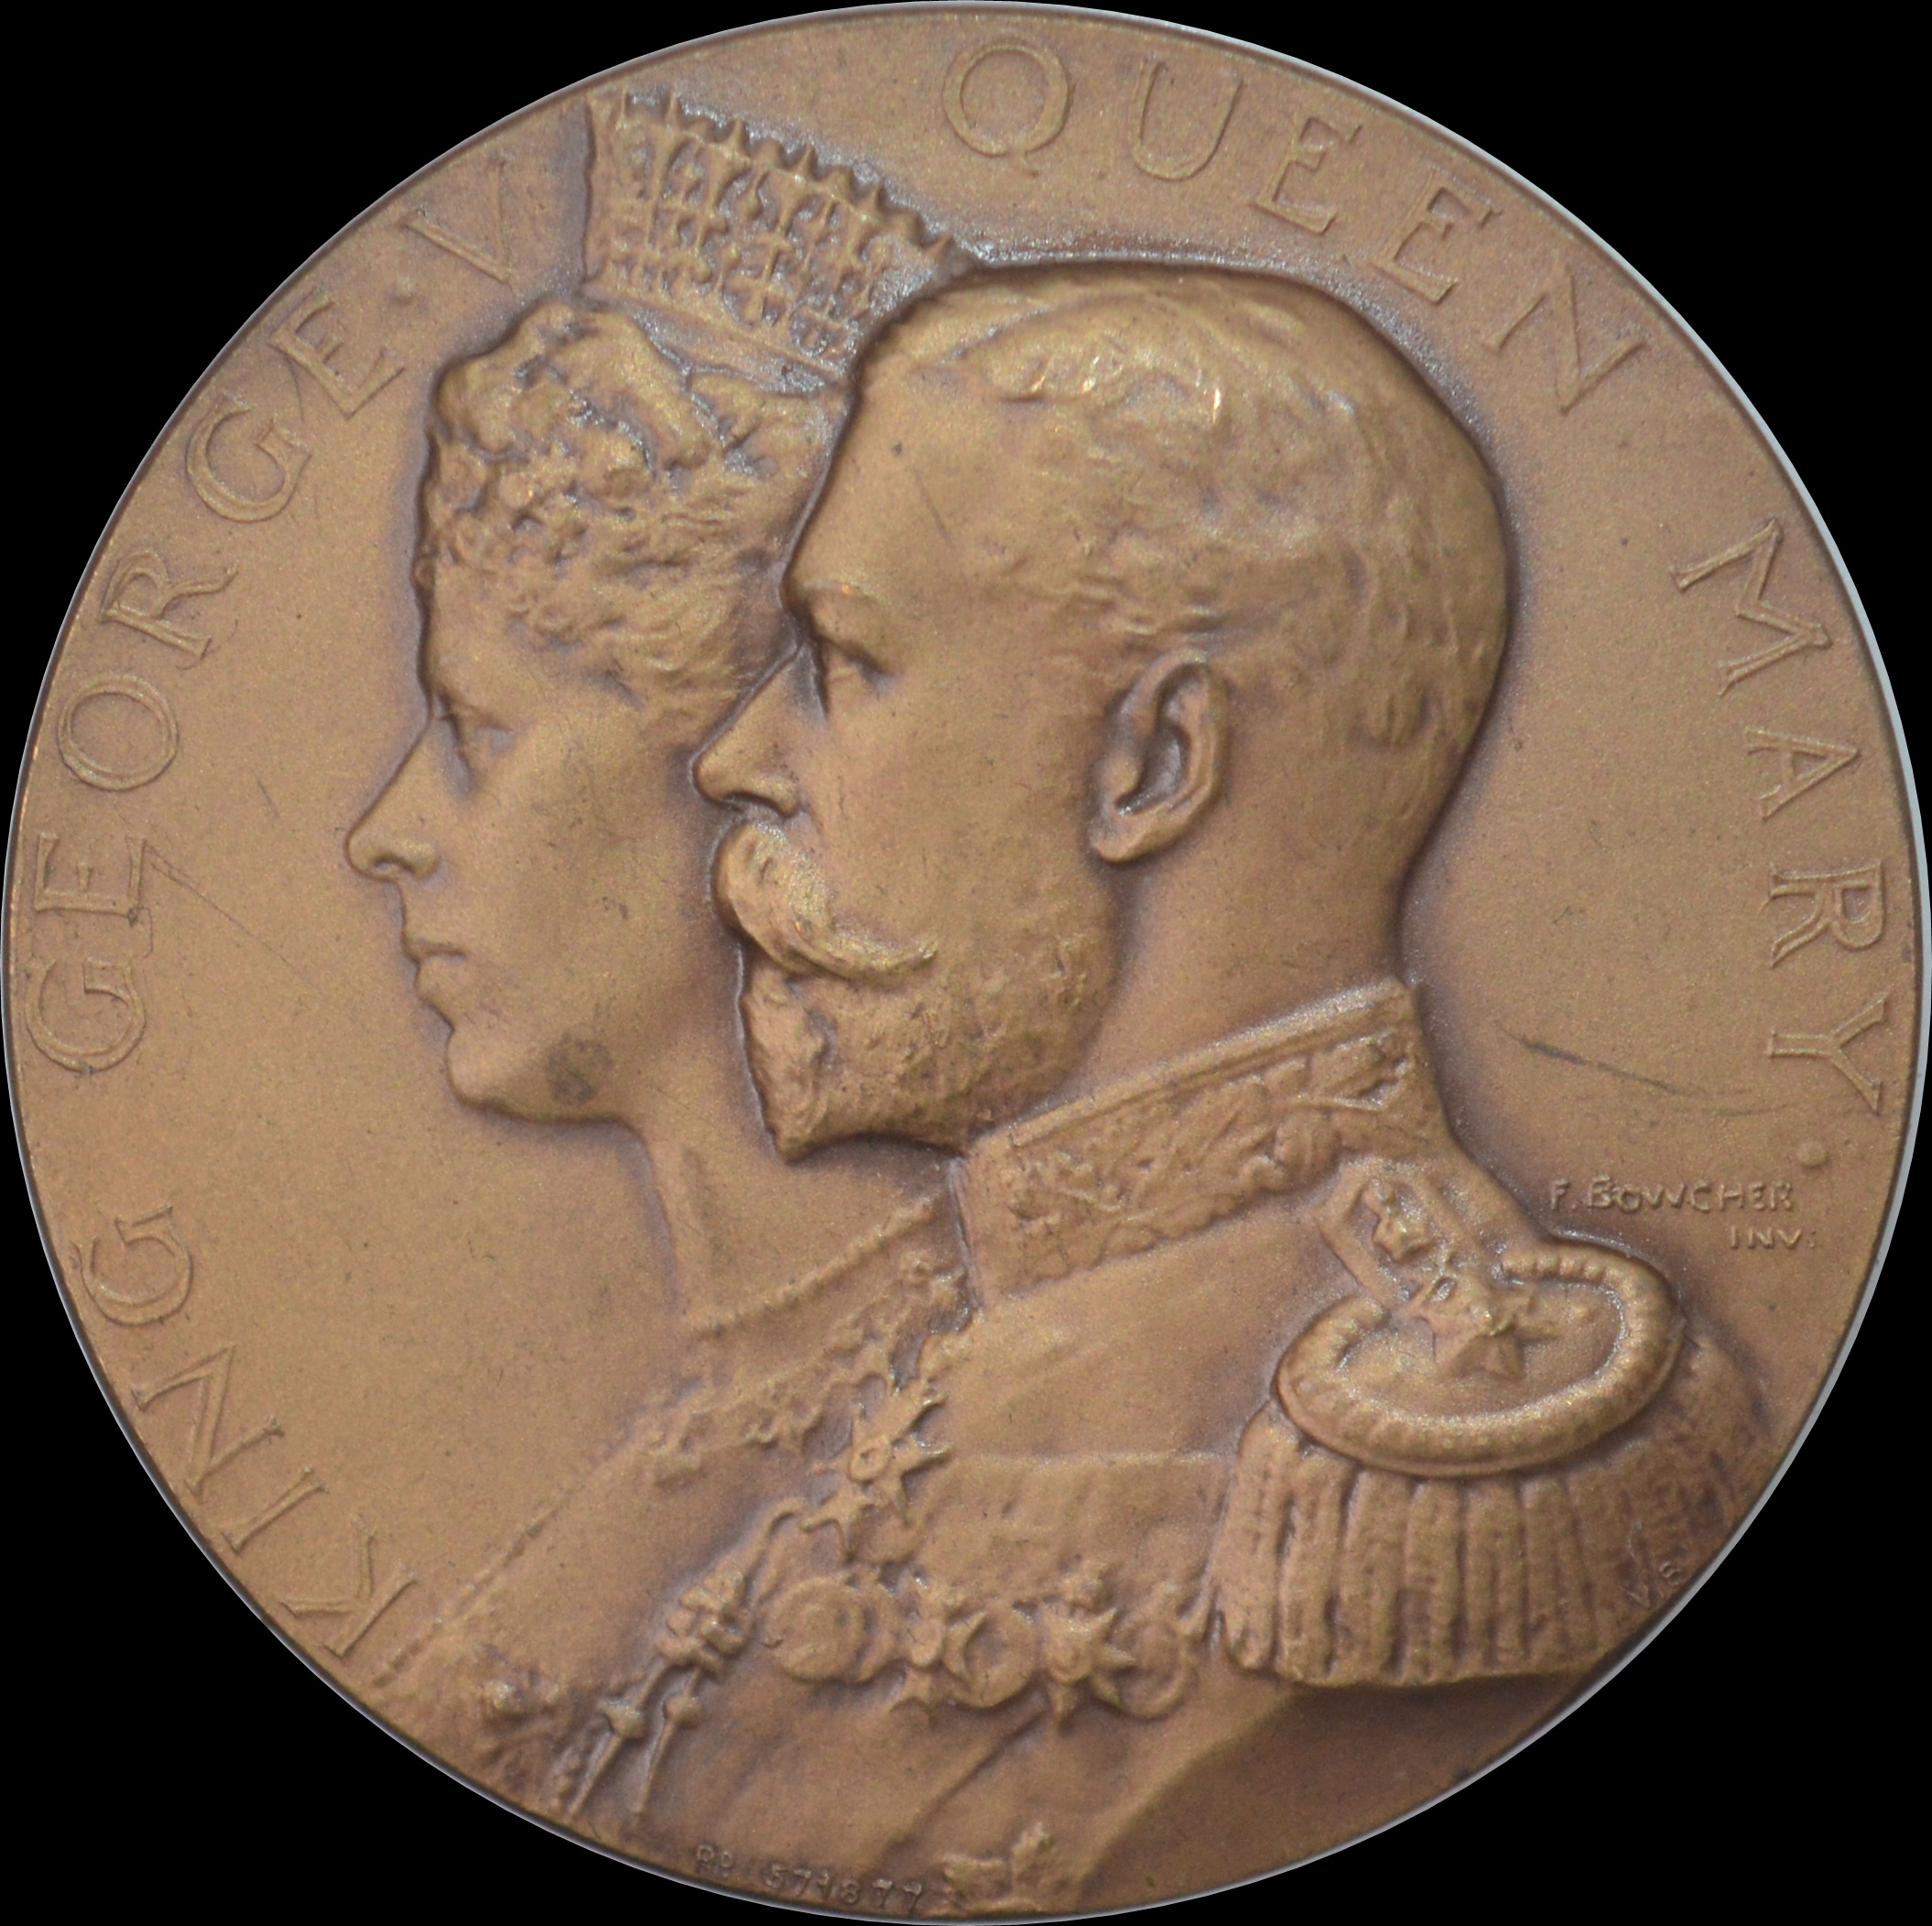 Coronation of George V medal by Bowcher